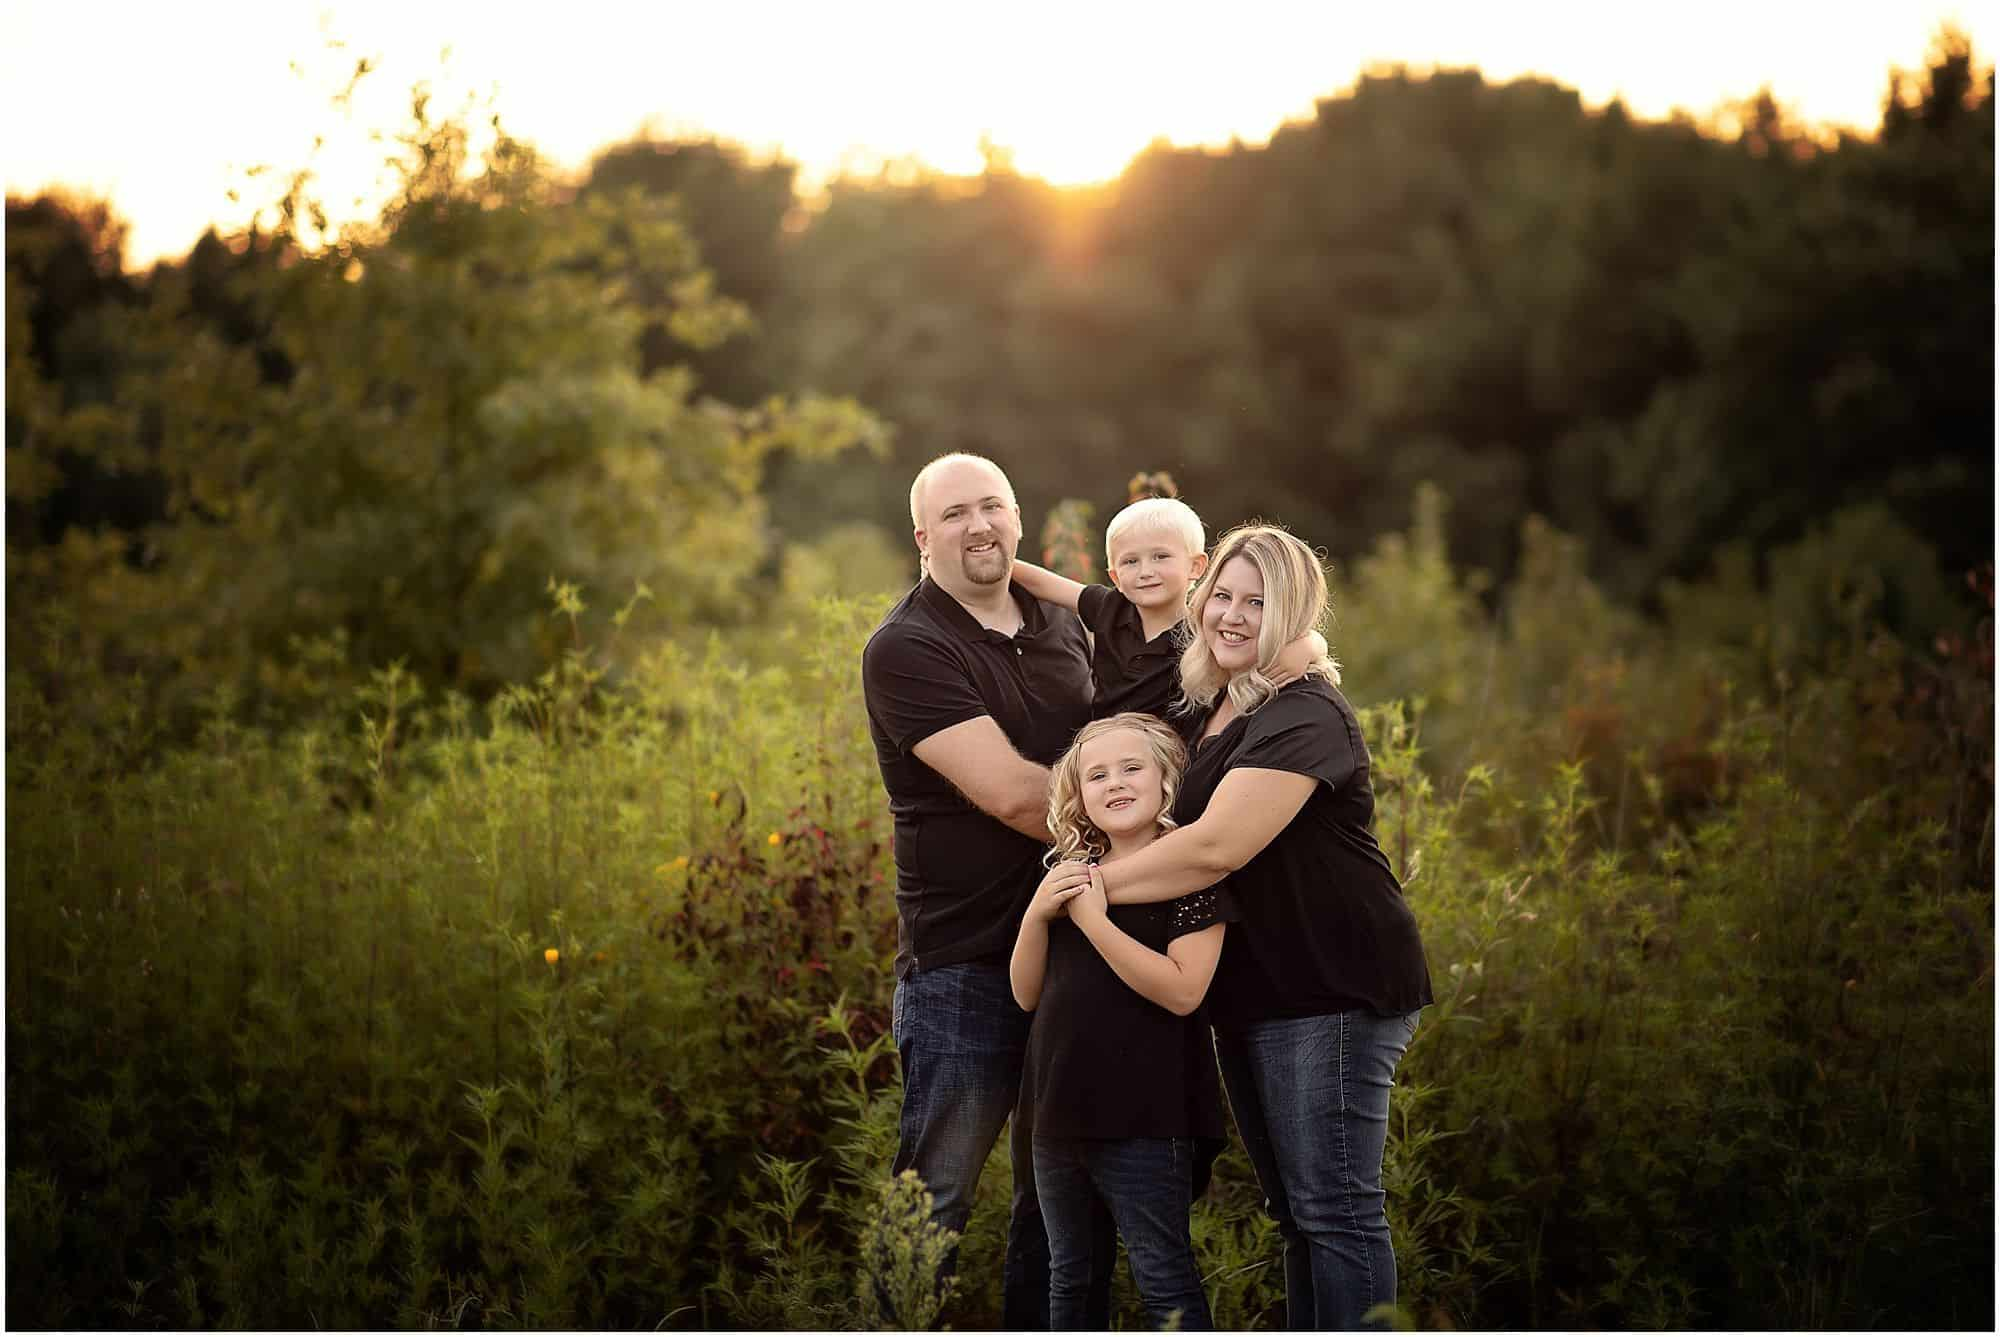 beautiful family session at summit park in blue ash, ohio with Samantha Sinchek photography